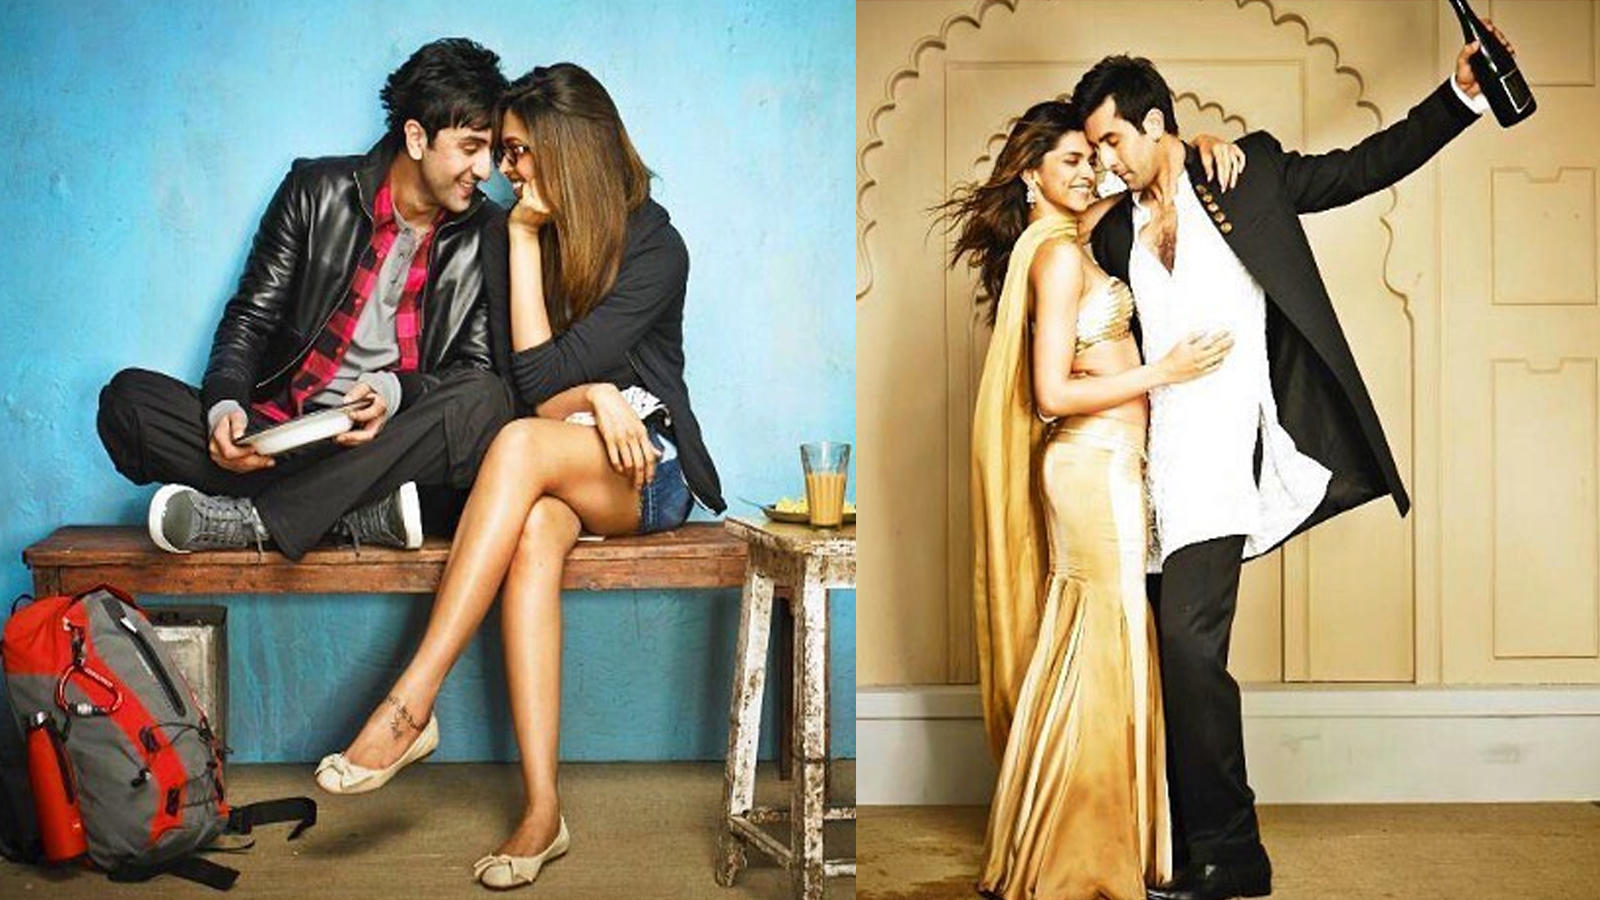 yeh-jawaani-hai-deewani-deepika-padukone-shares-first-look-test-pictures-with-ranbir-kapoor-as-the-film-clocks-7